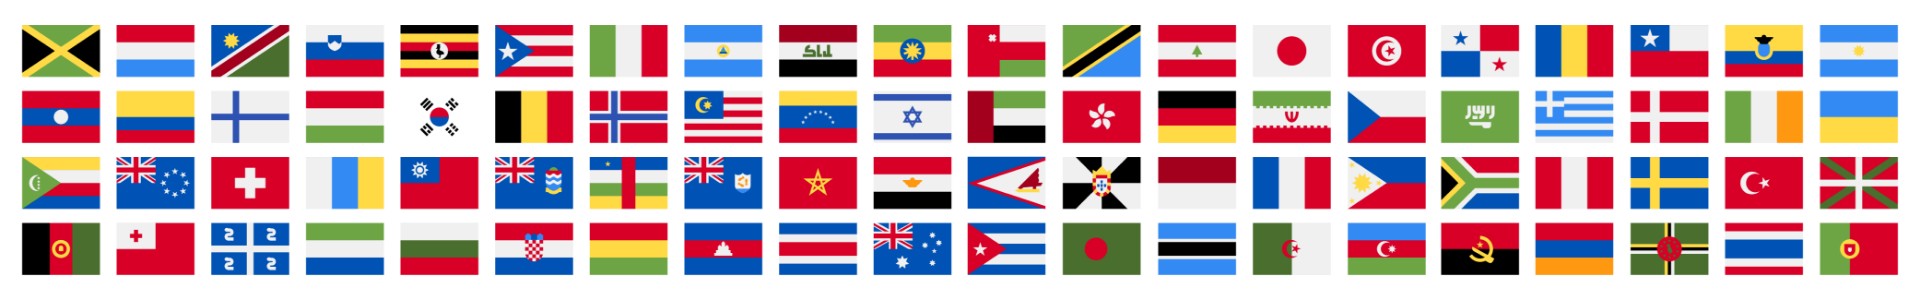 903, 903, flags, flags.png, 121308, https://cygnetjobs.co.uk/wp-content/uploads/flags.png, https://cygnetjobs.co.uk/diversity/flags/, , 1, , , flags, inherit, 900, 2020-09-22 16:27:44, 2020-09-22 16:27:44, 0, image/png, image, png, https://cygnetjobs.co.uk/wp-includes/images/media/default.png, 1920, 300, Array